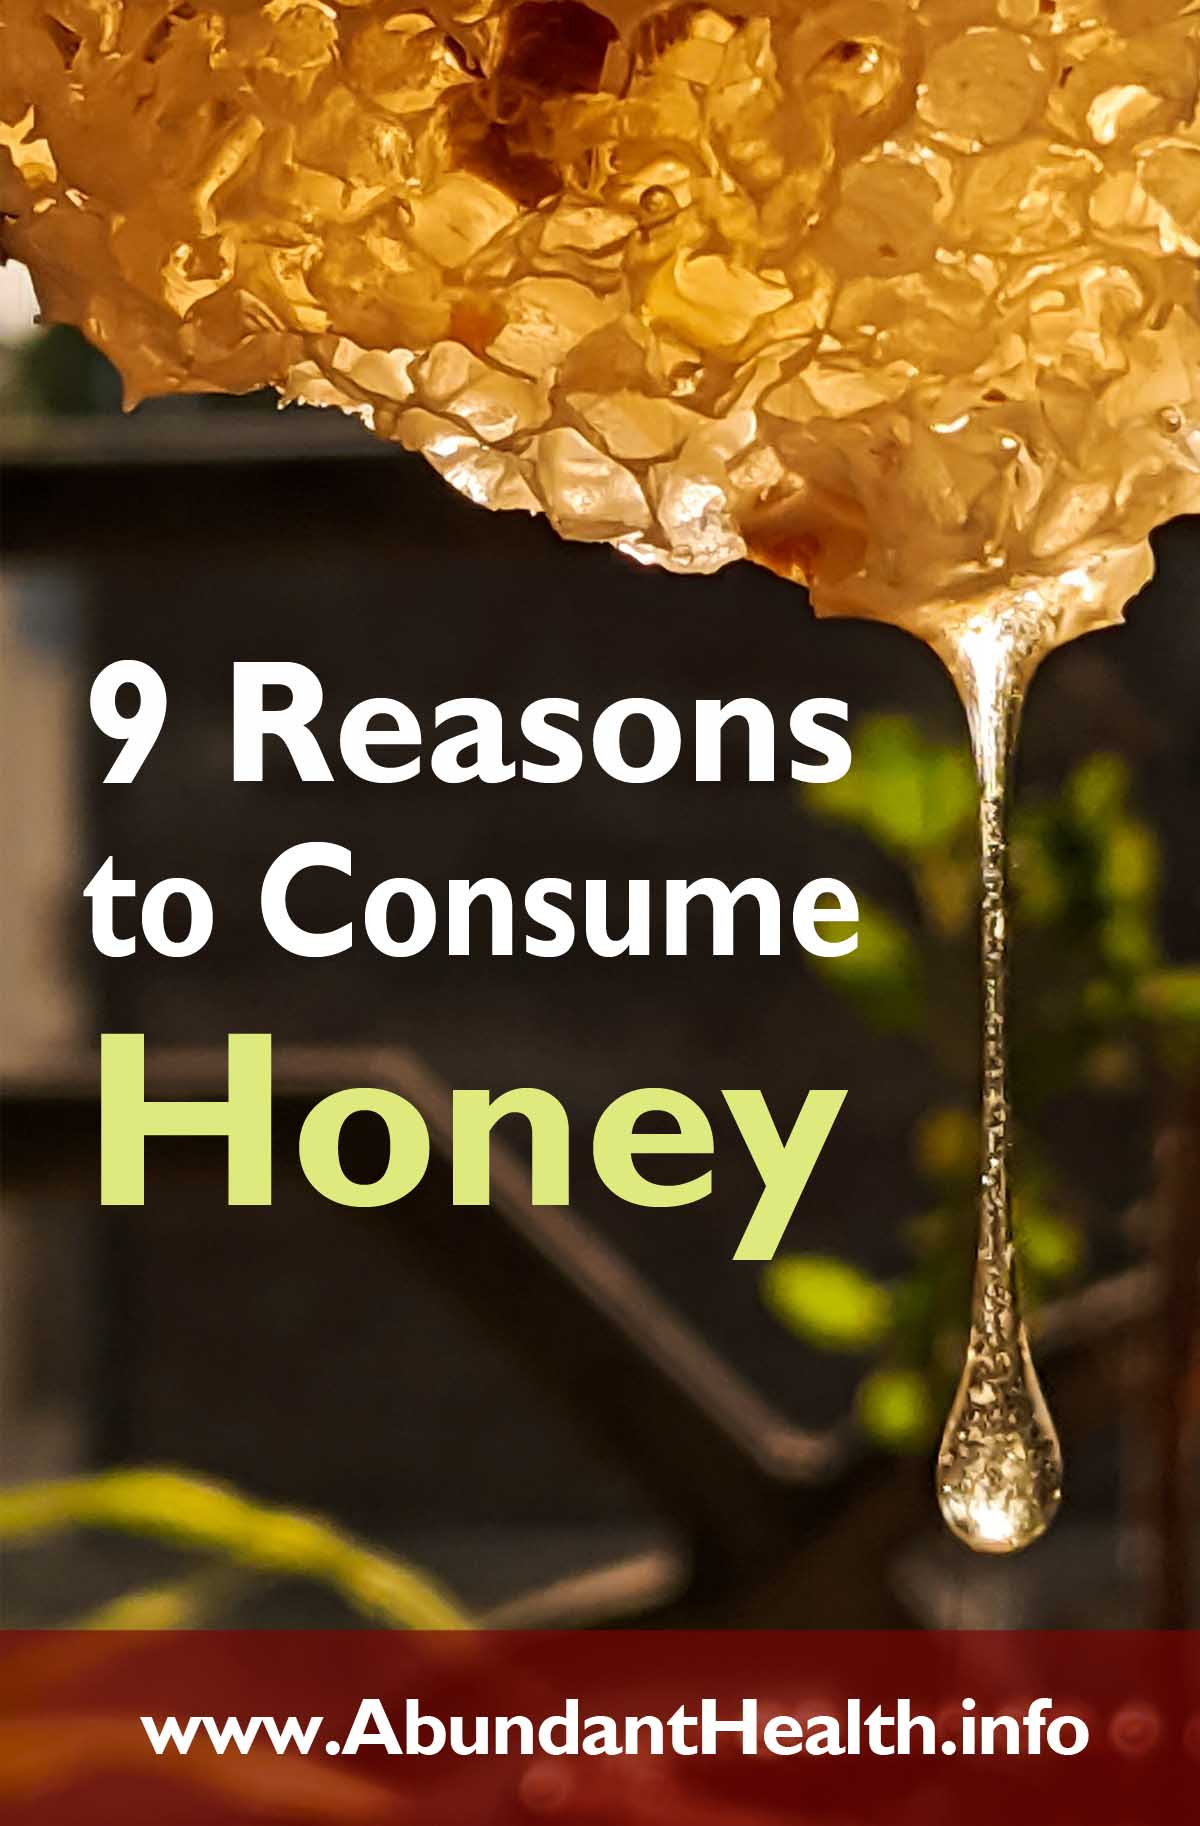 9 Reasons to Consume Honey